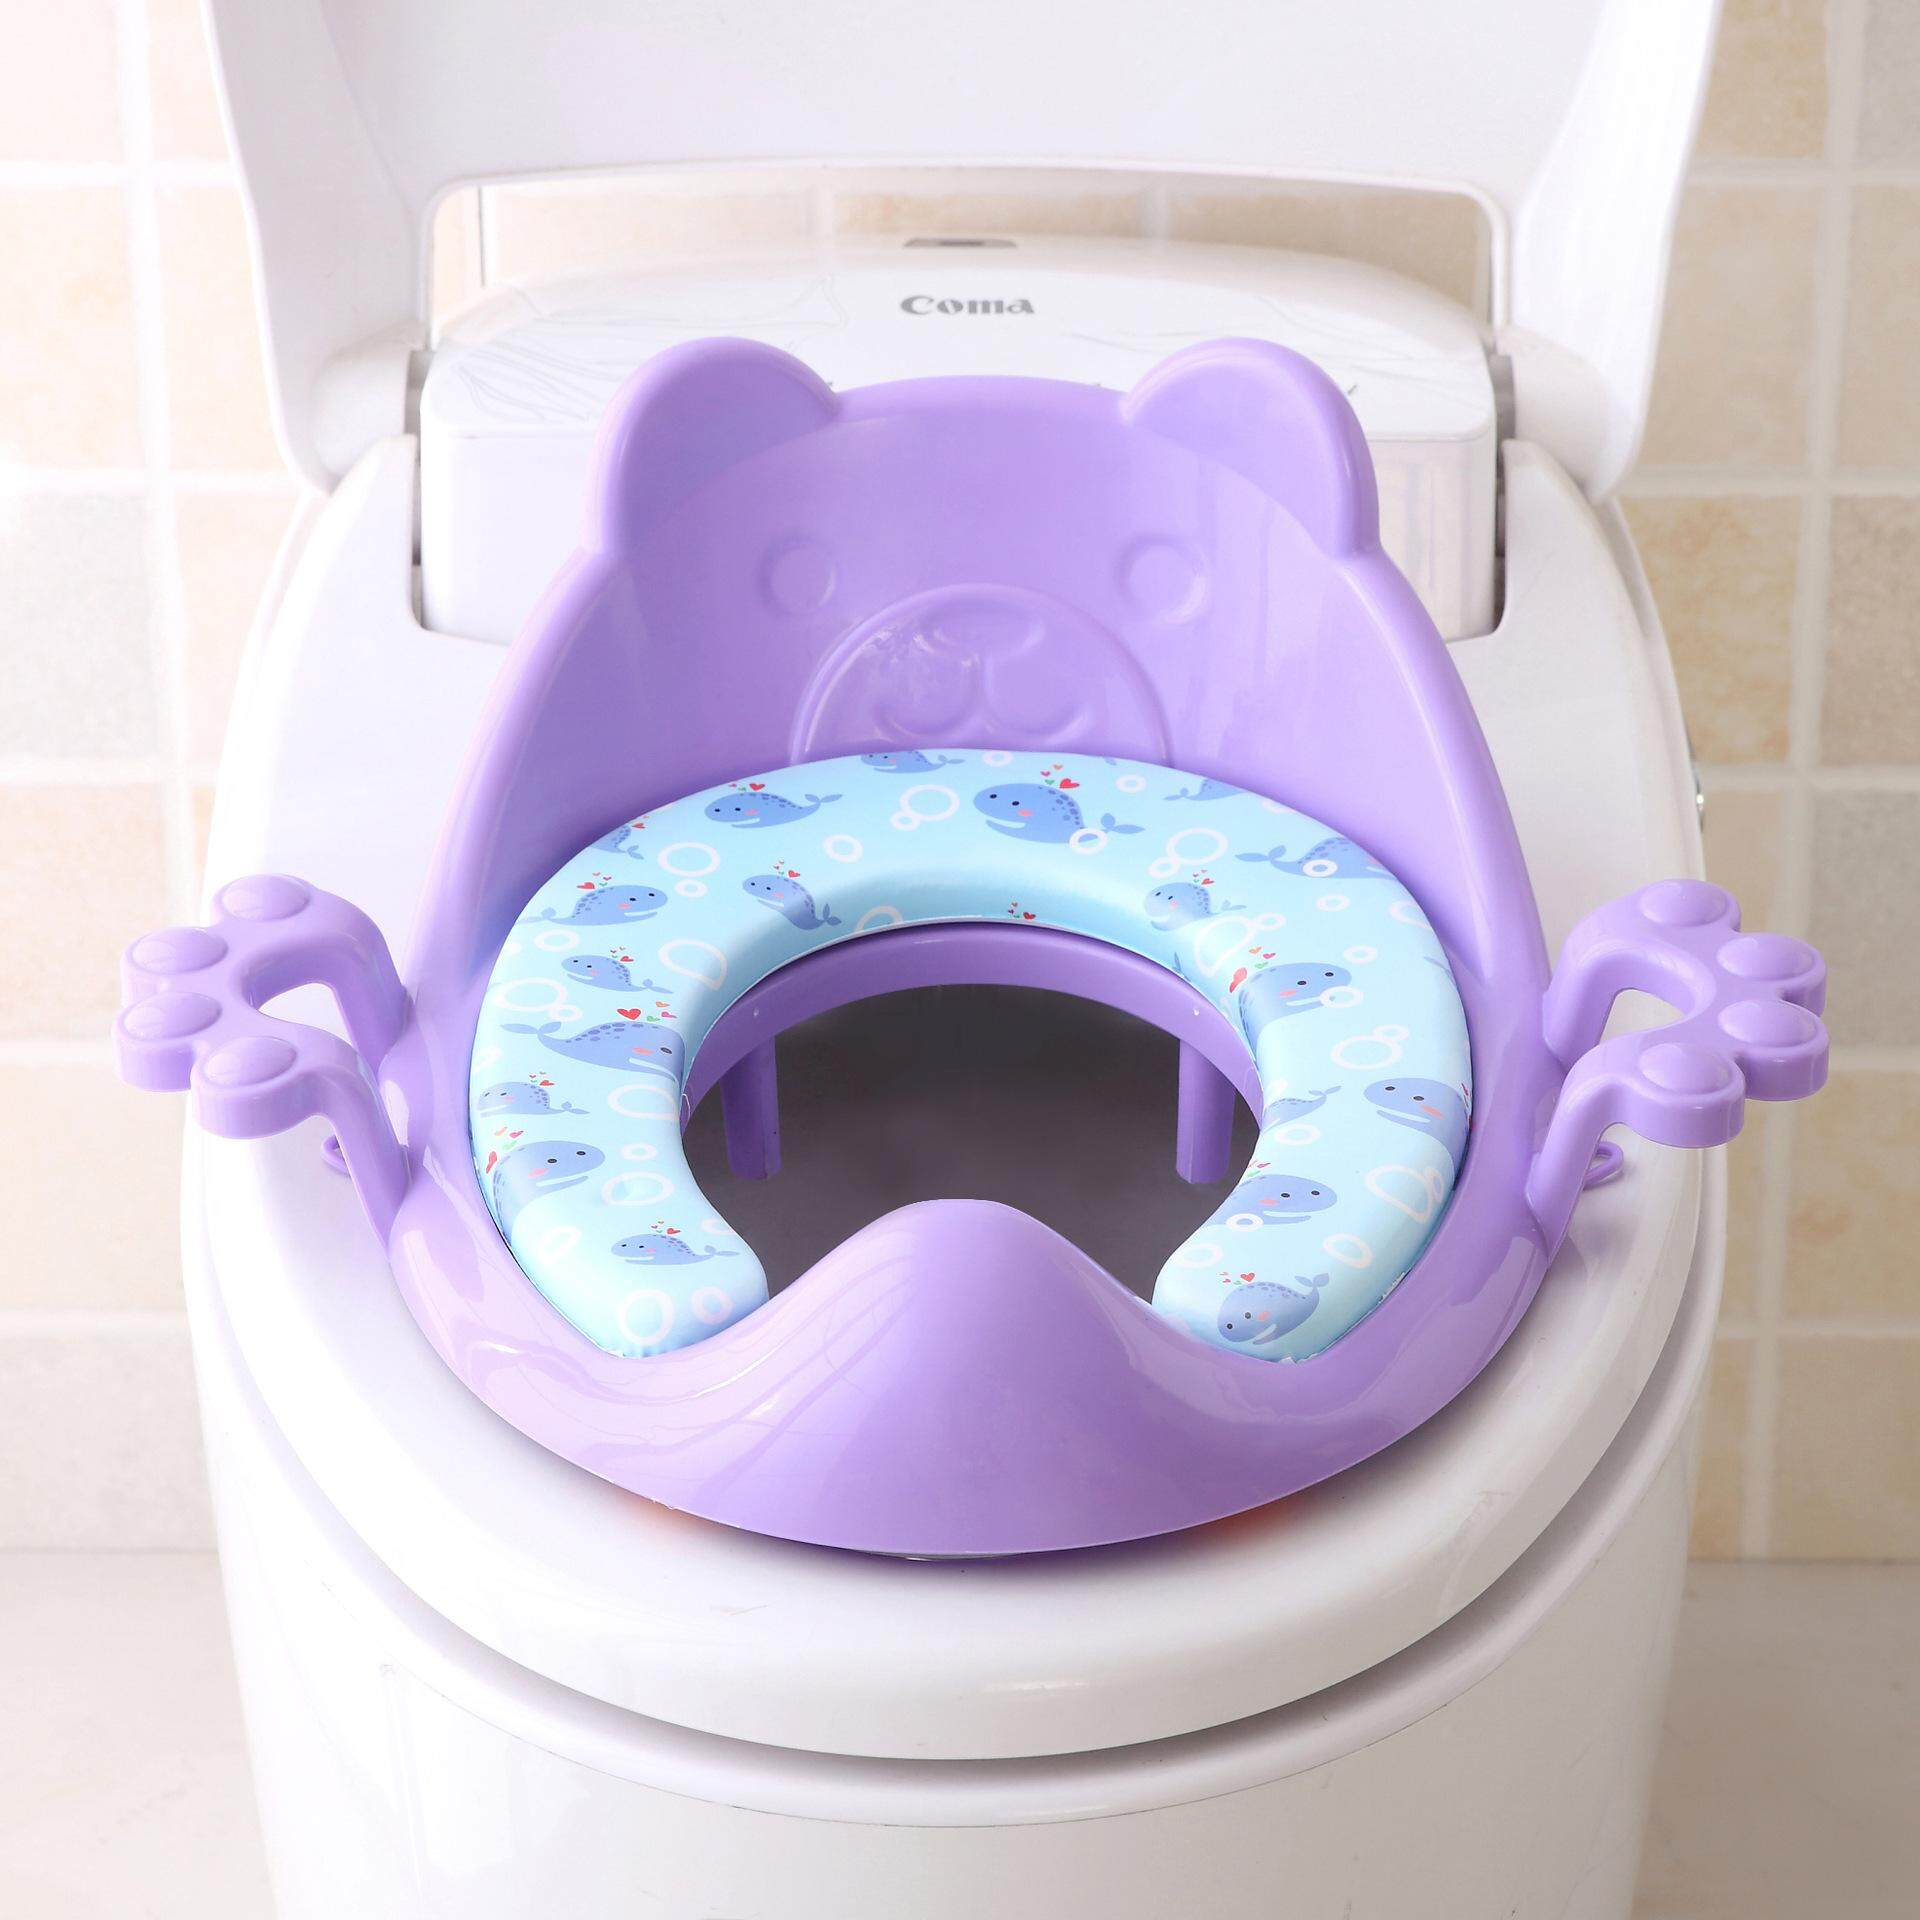 Potty Training - Buy Potty Training at Best Price in Malaysia | www